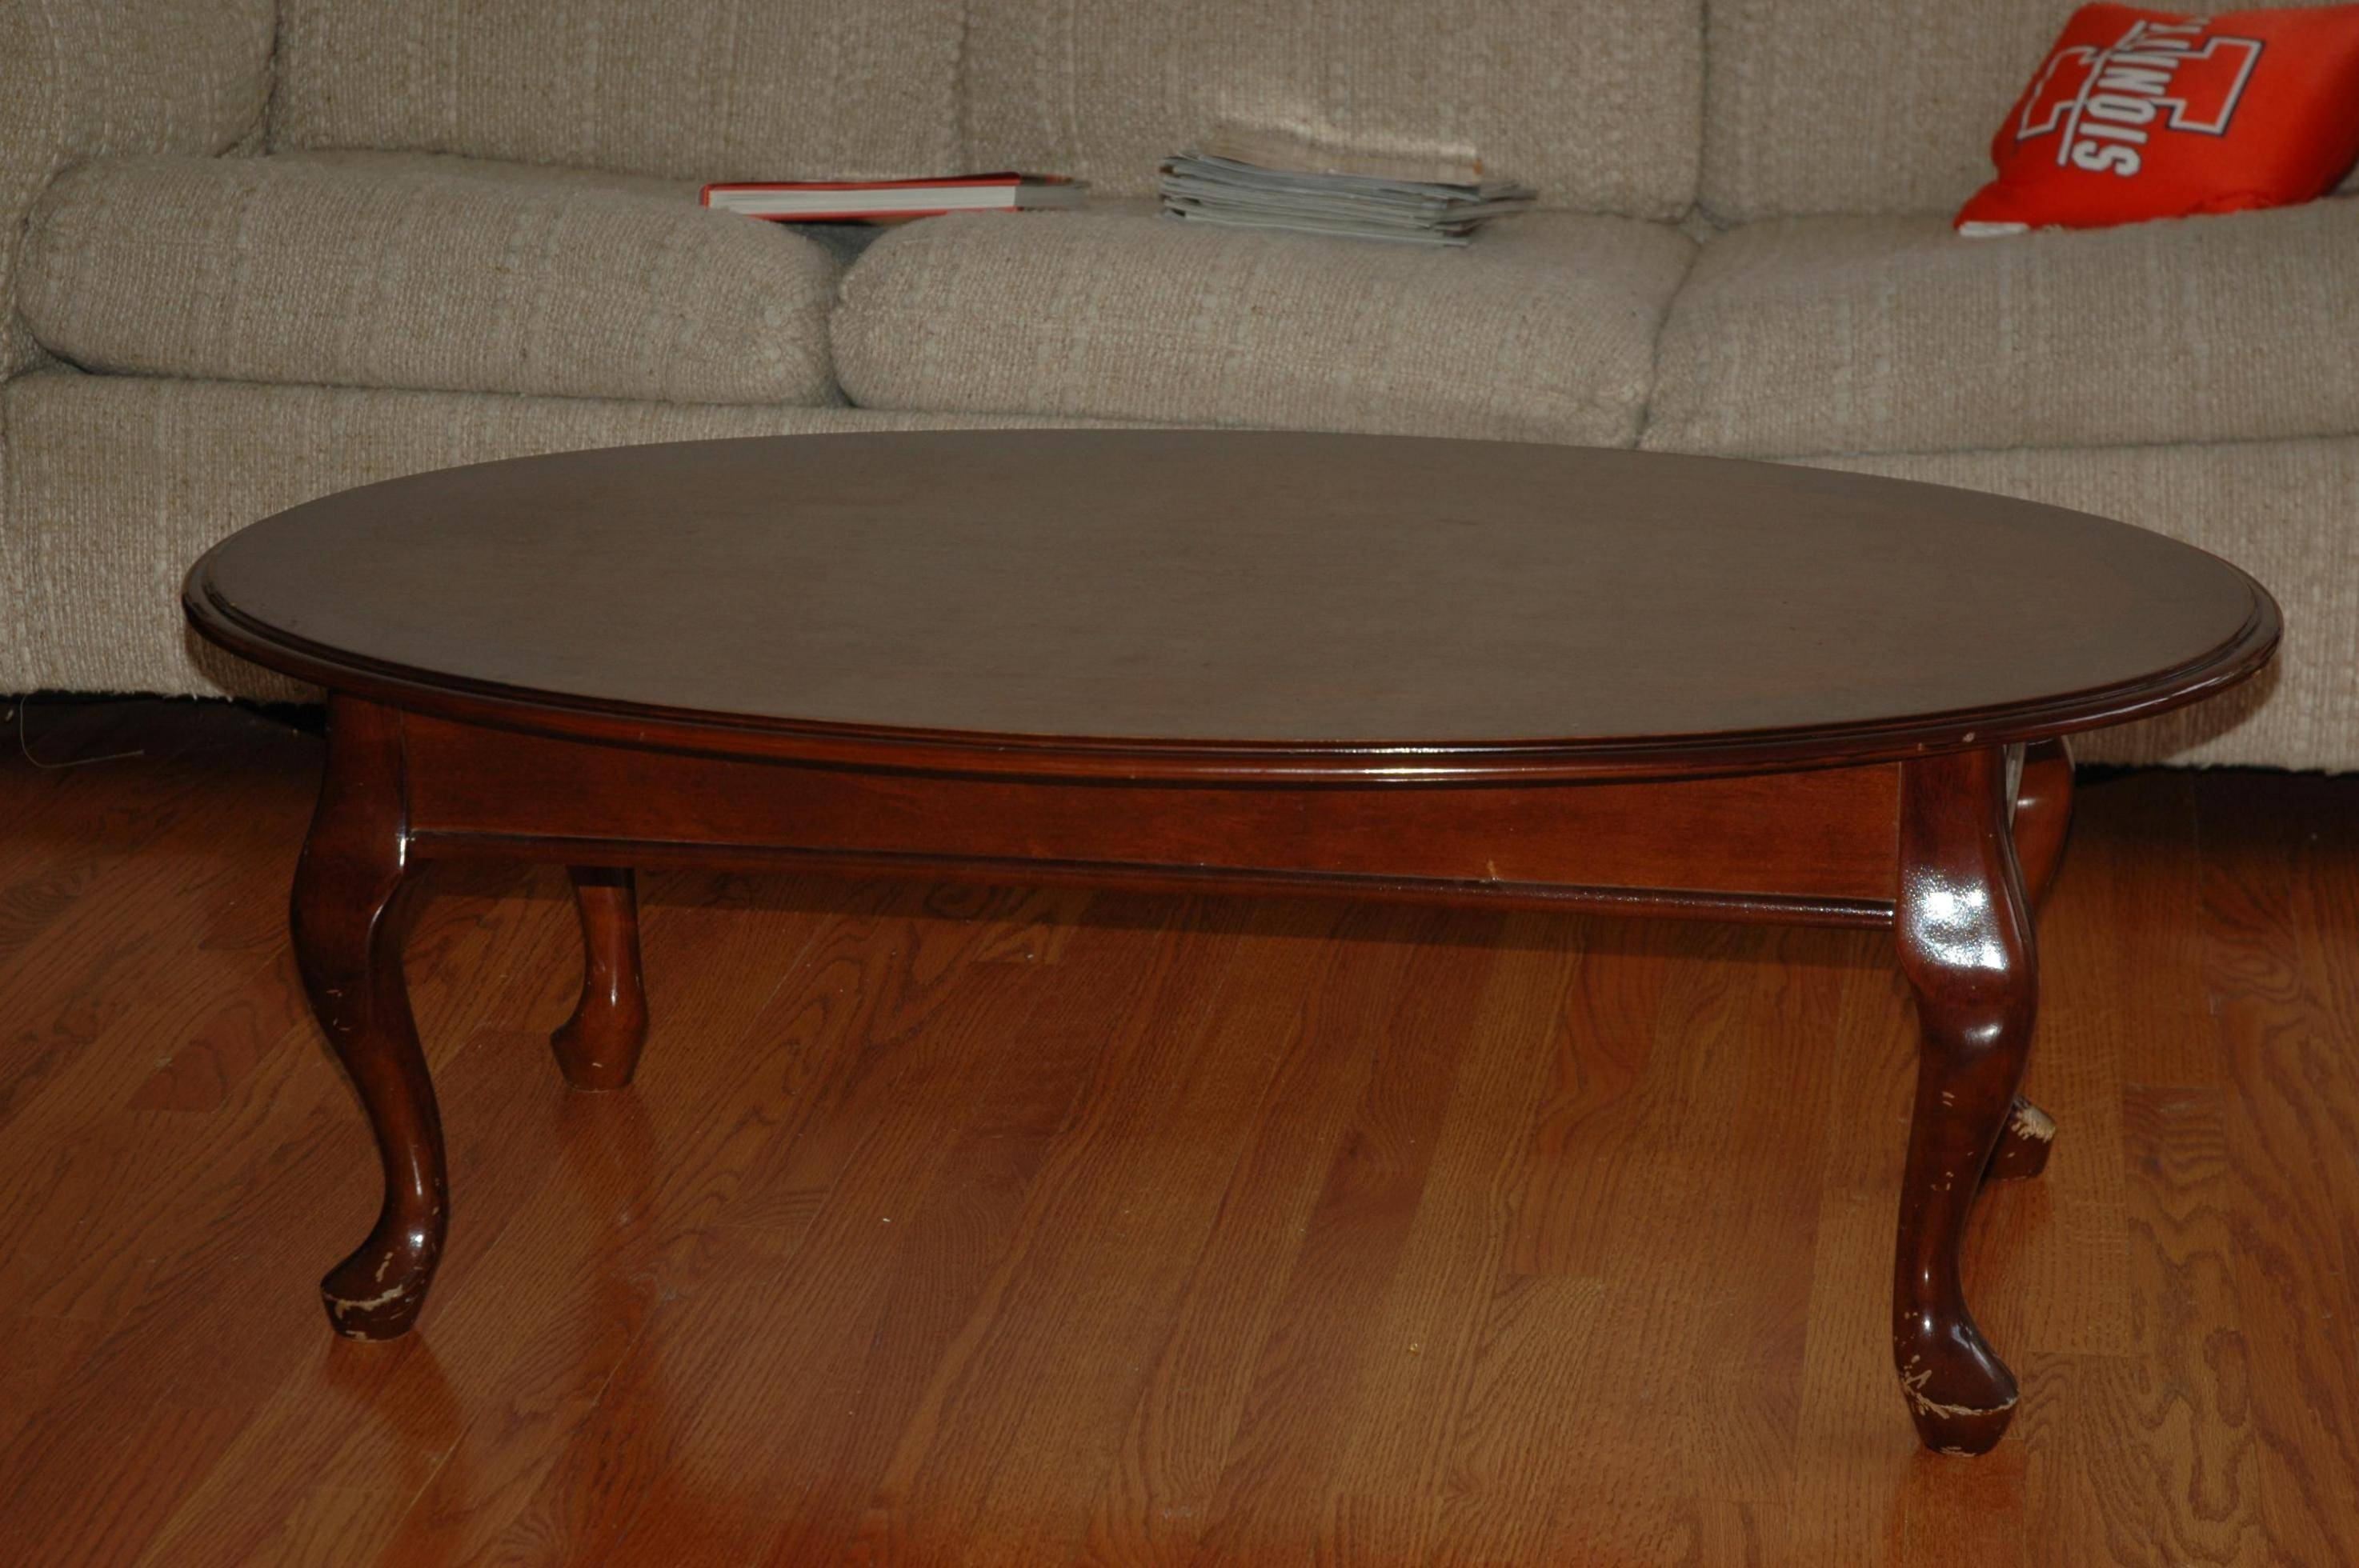 Coffee Table: Popular Oval Wood Coffee Table Designs Oval Cherry with Oval Wooden Coffee Tables (Image 4 of 30)